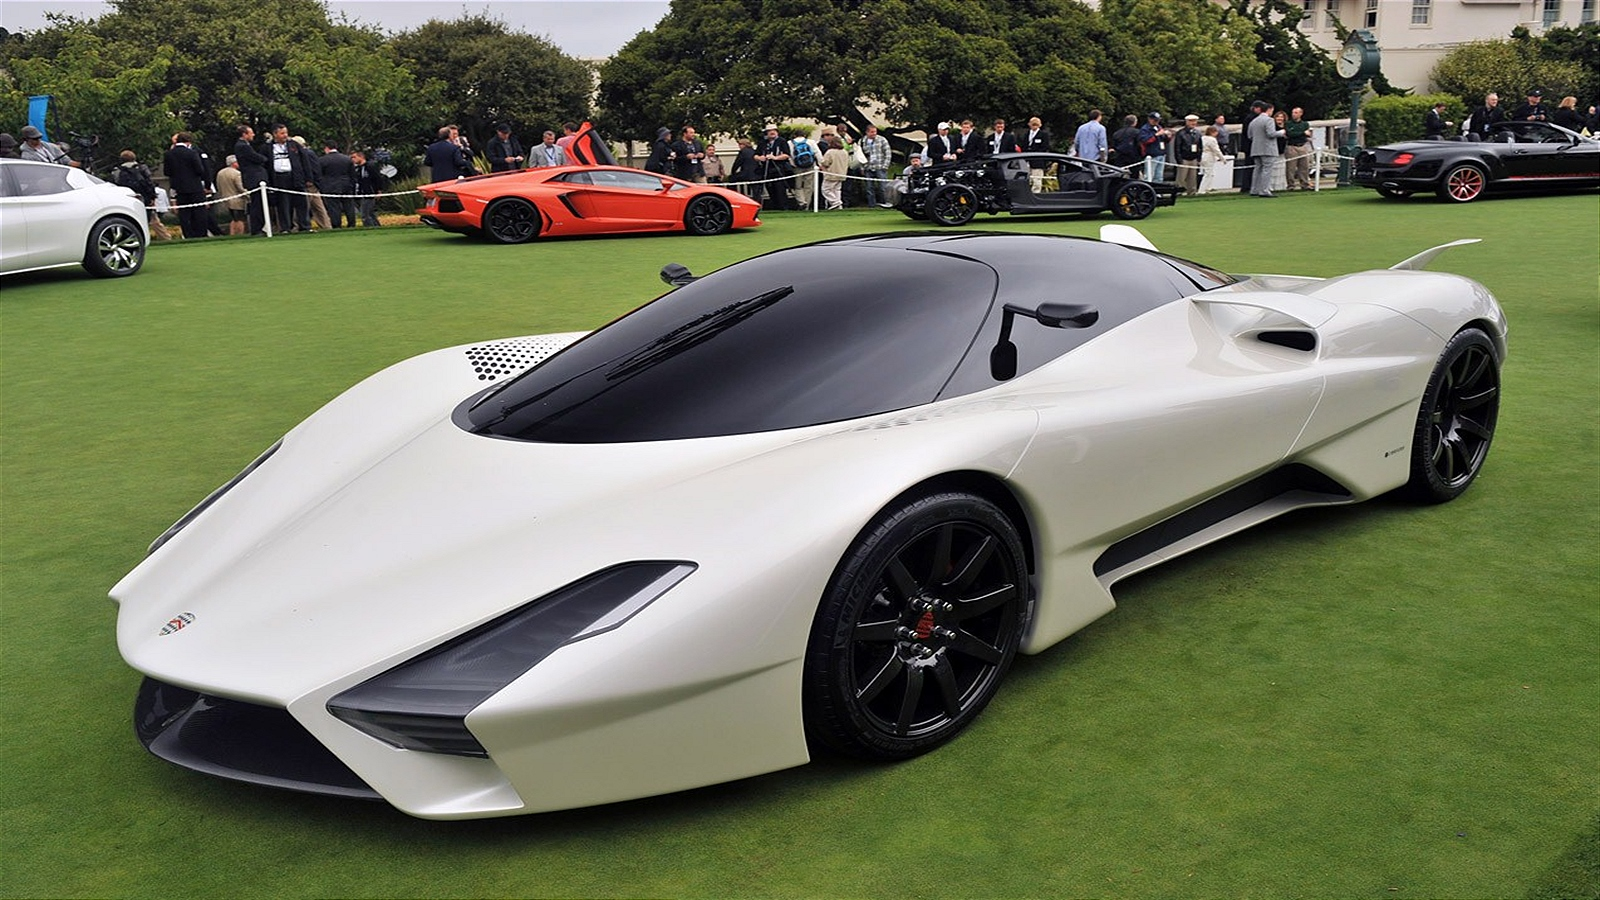 In 2009 Ssc Updated The Ultimate Aero Tt With The New Version Having An Increase In Power Of 15 Over The Older Model Ssc Predicts A Top Speed Of Over